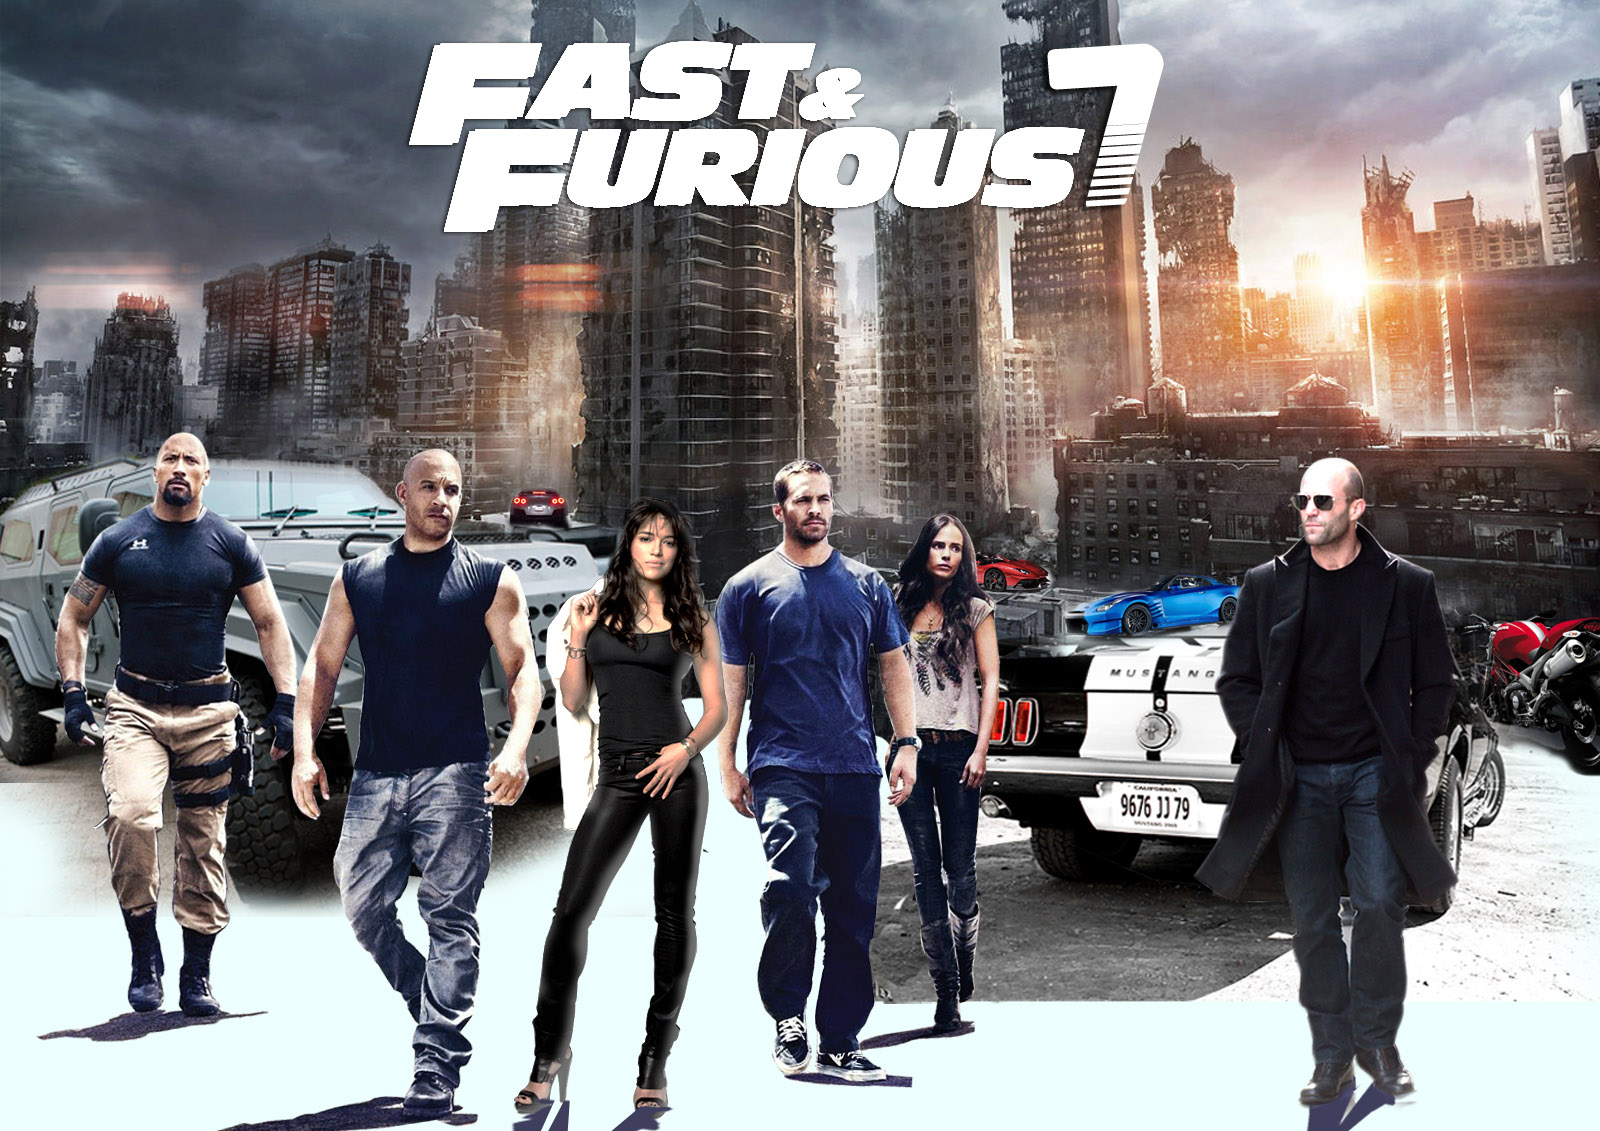 fast and furious 7 full movie online free streaming